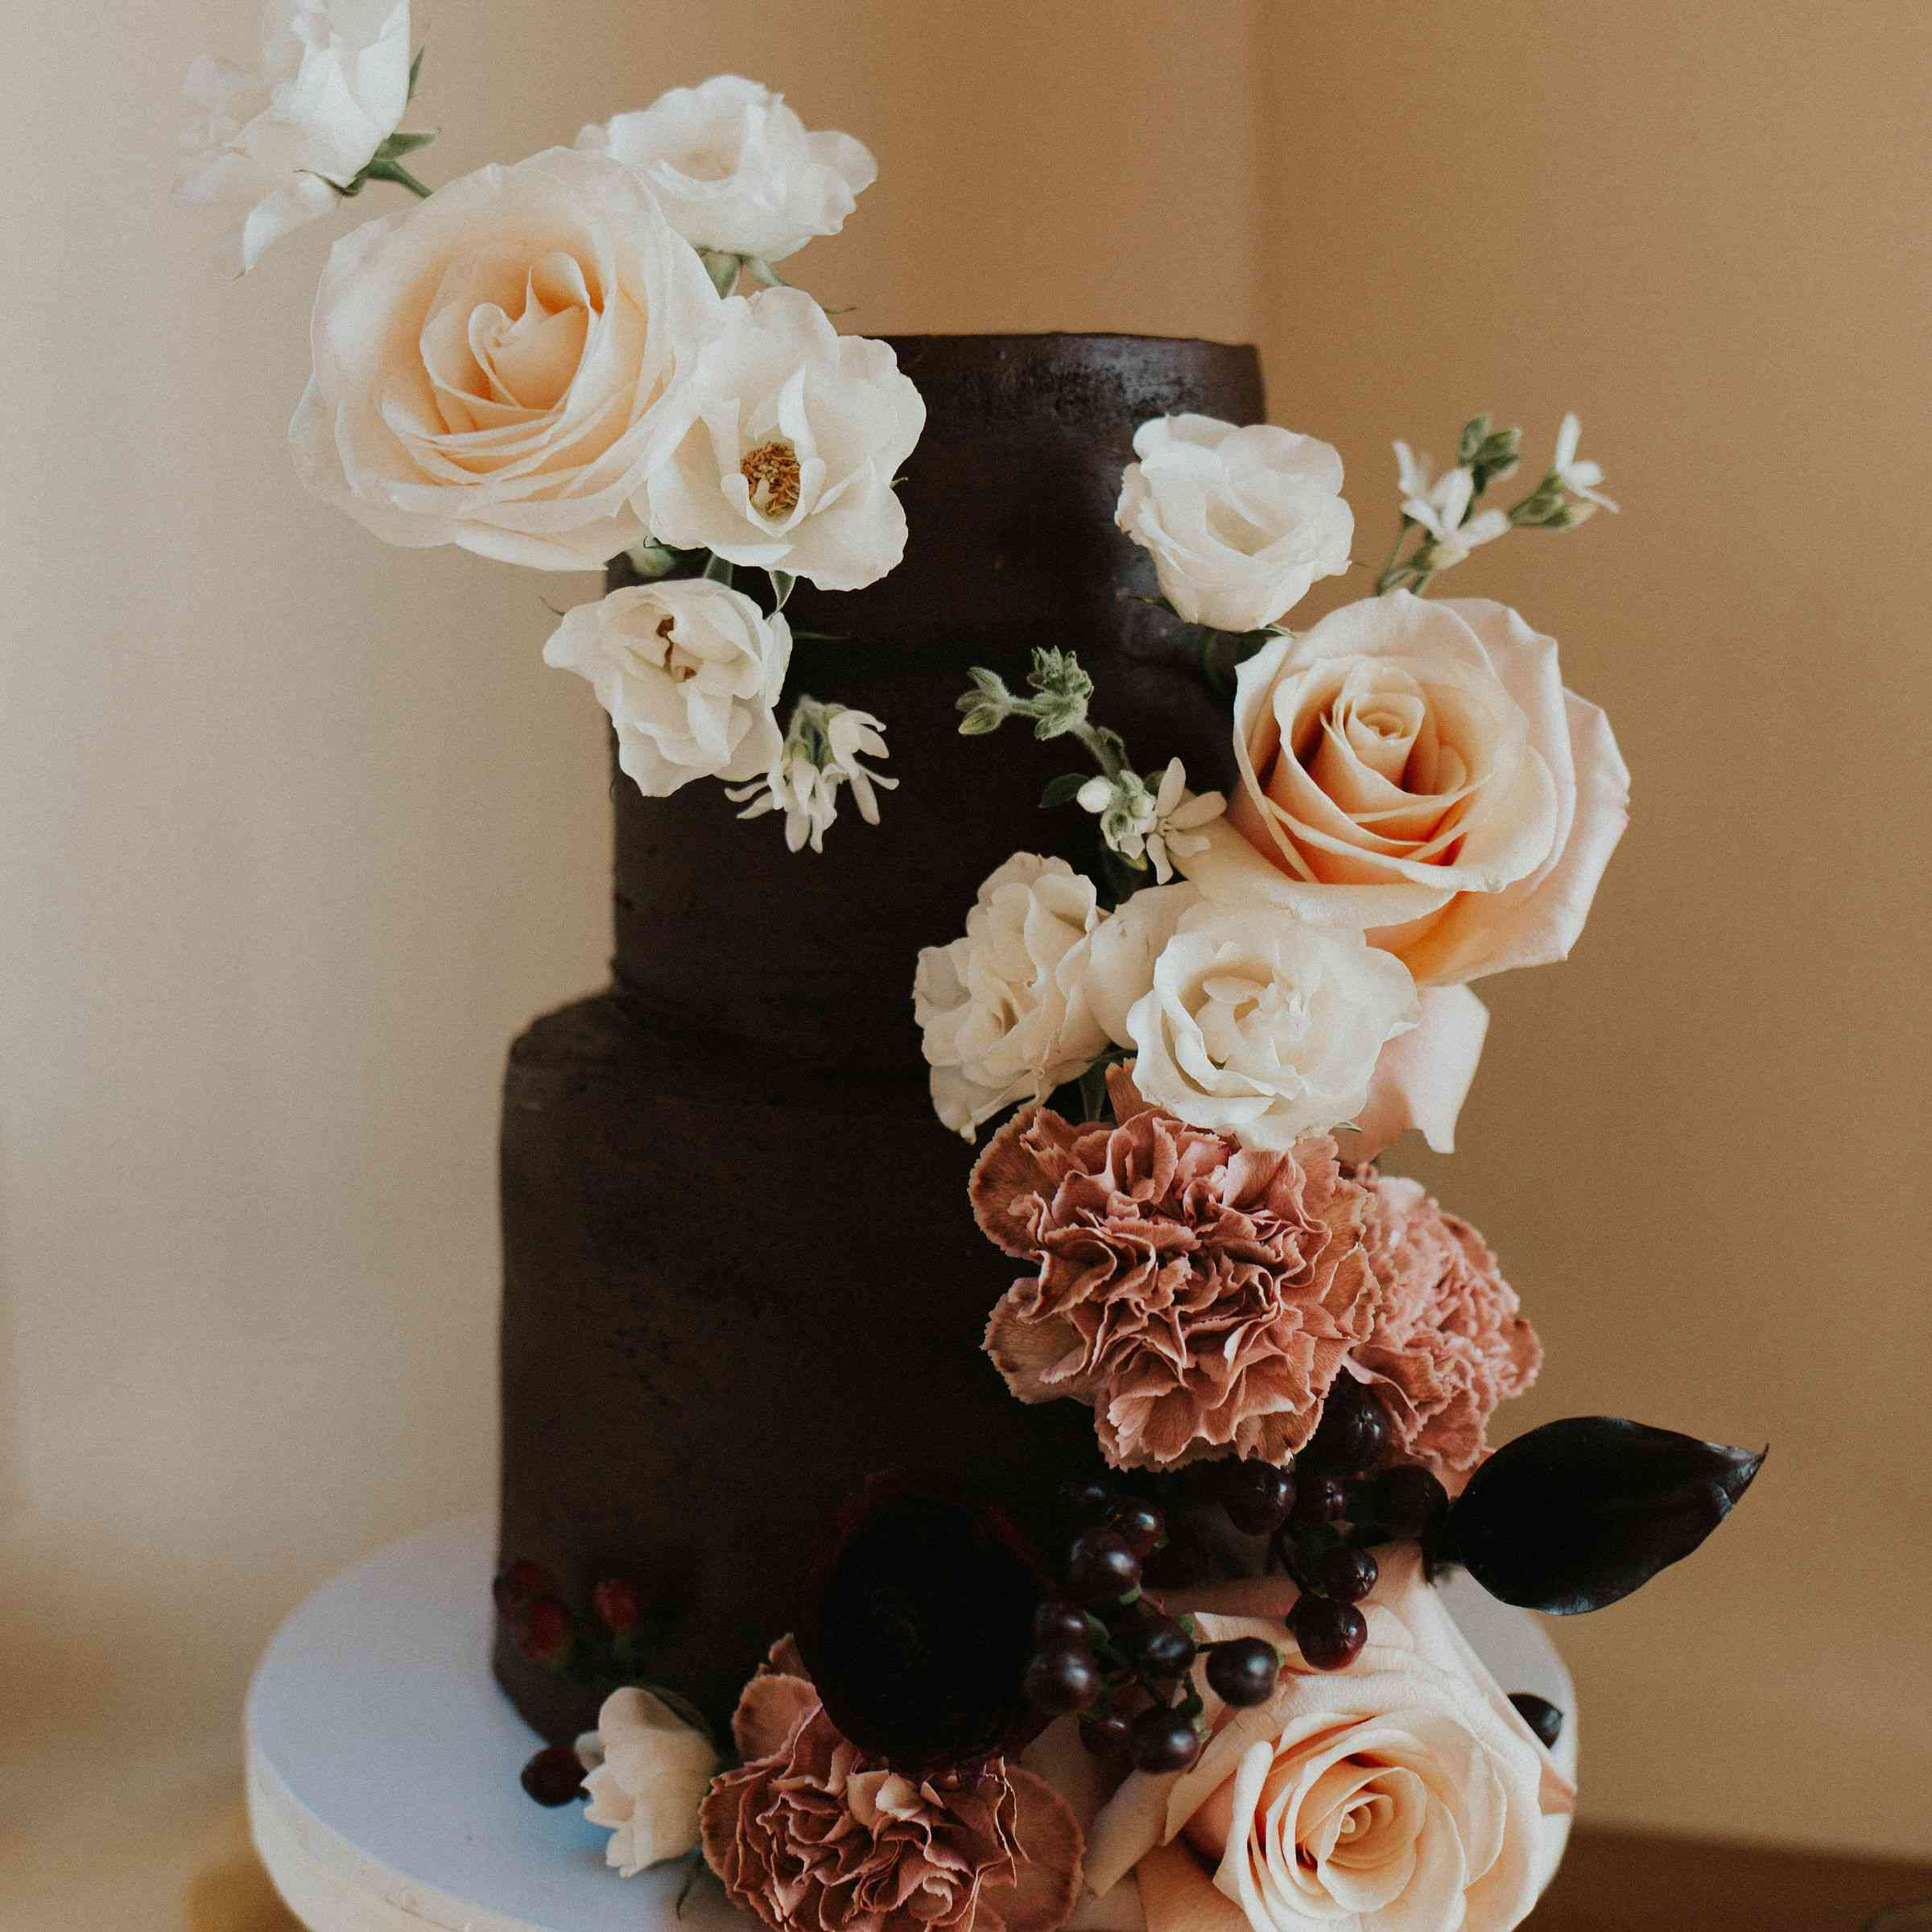 Black tiered wedding cake with blush, red, and cream floral accents